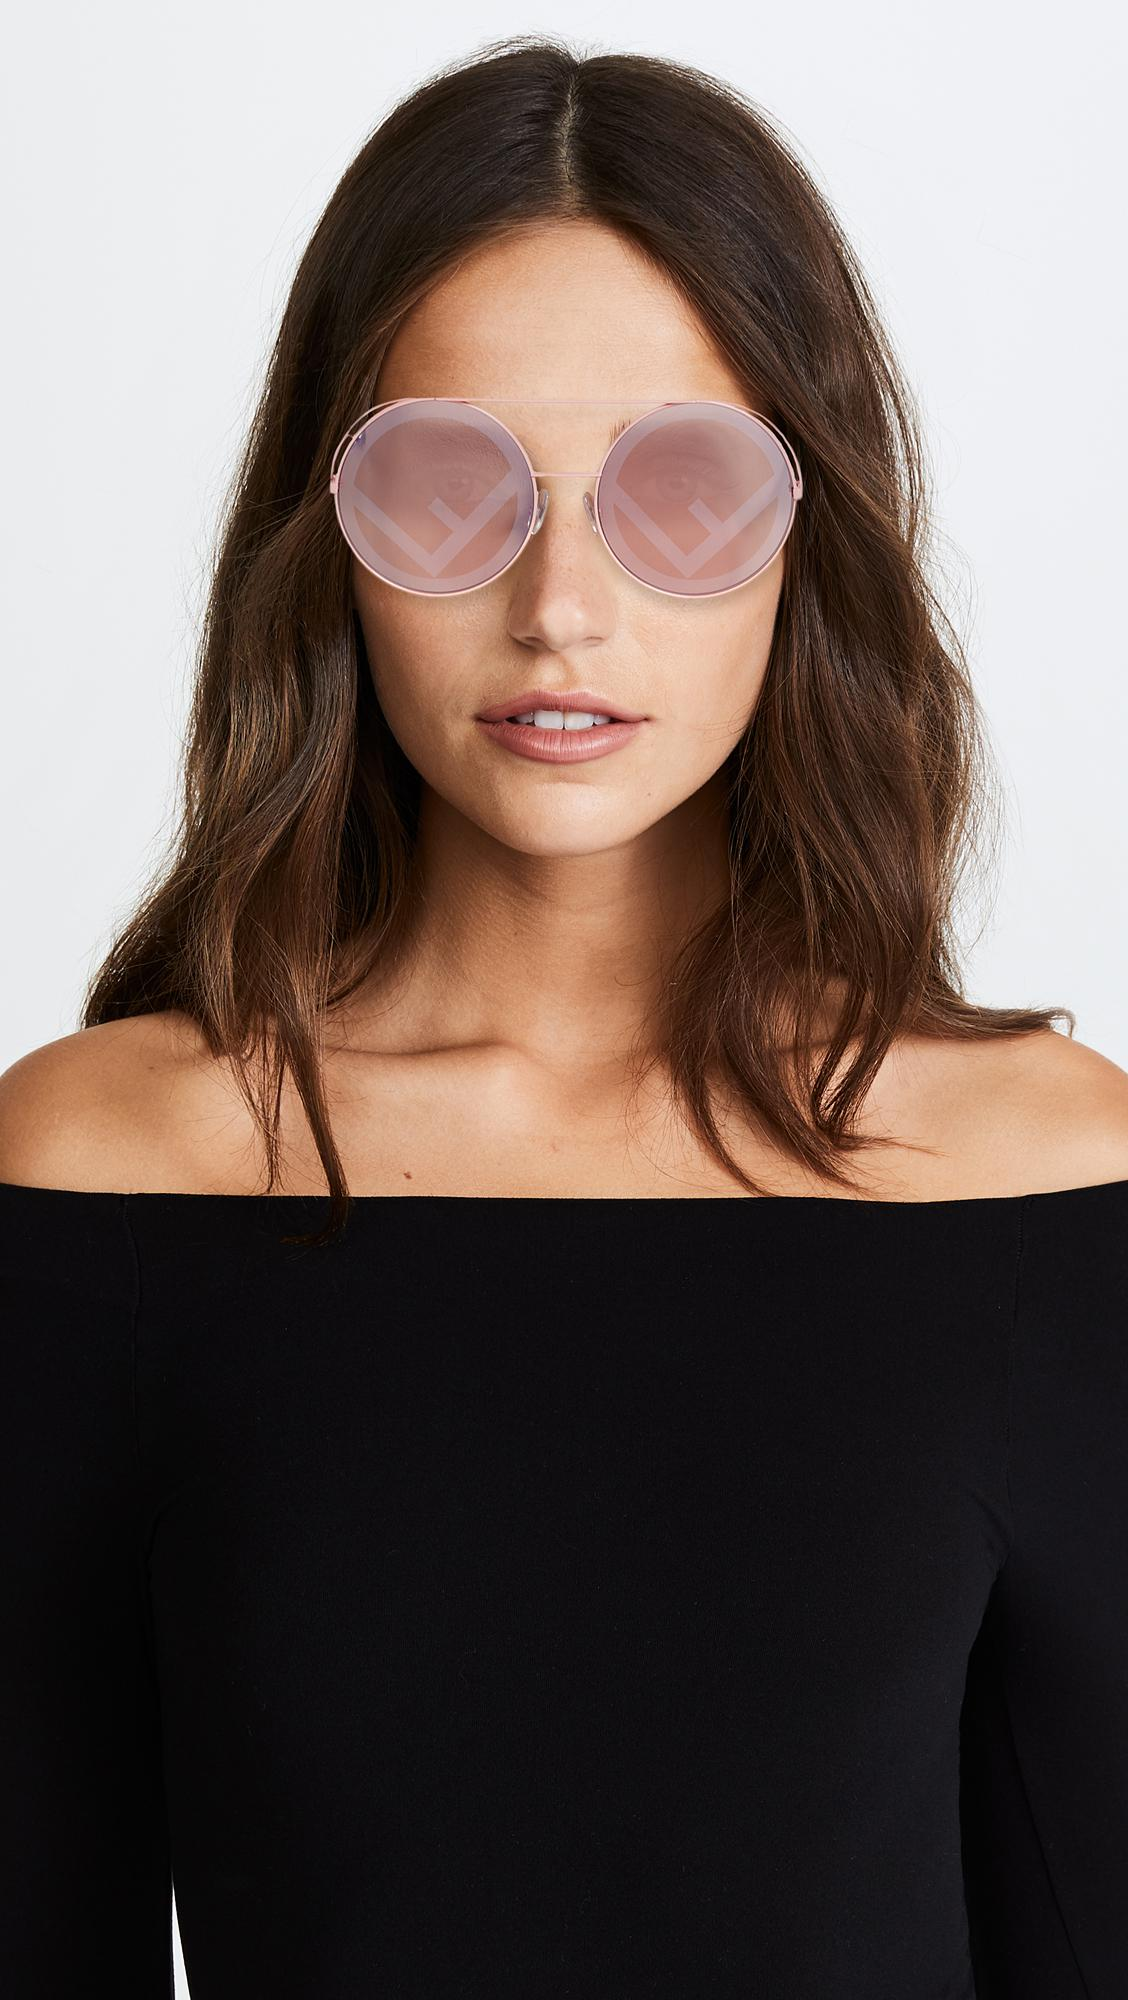 5c0f707f2f8f5 Fendi Round Holographic Sunglasses in Pink - Lyst